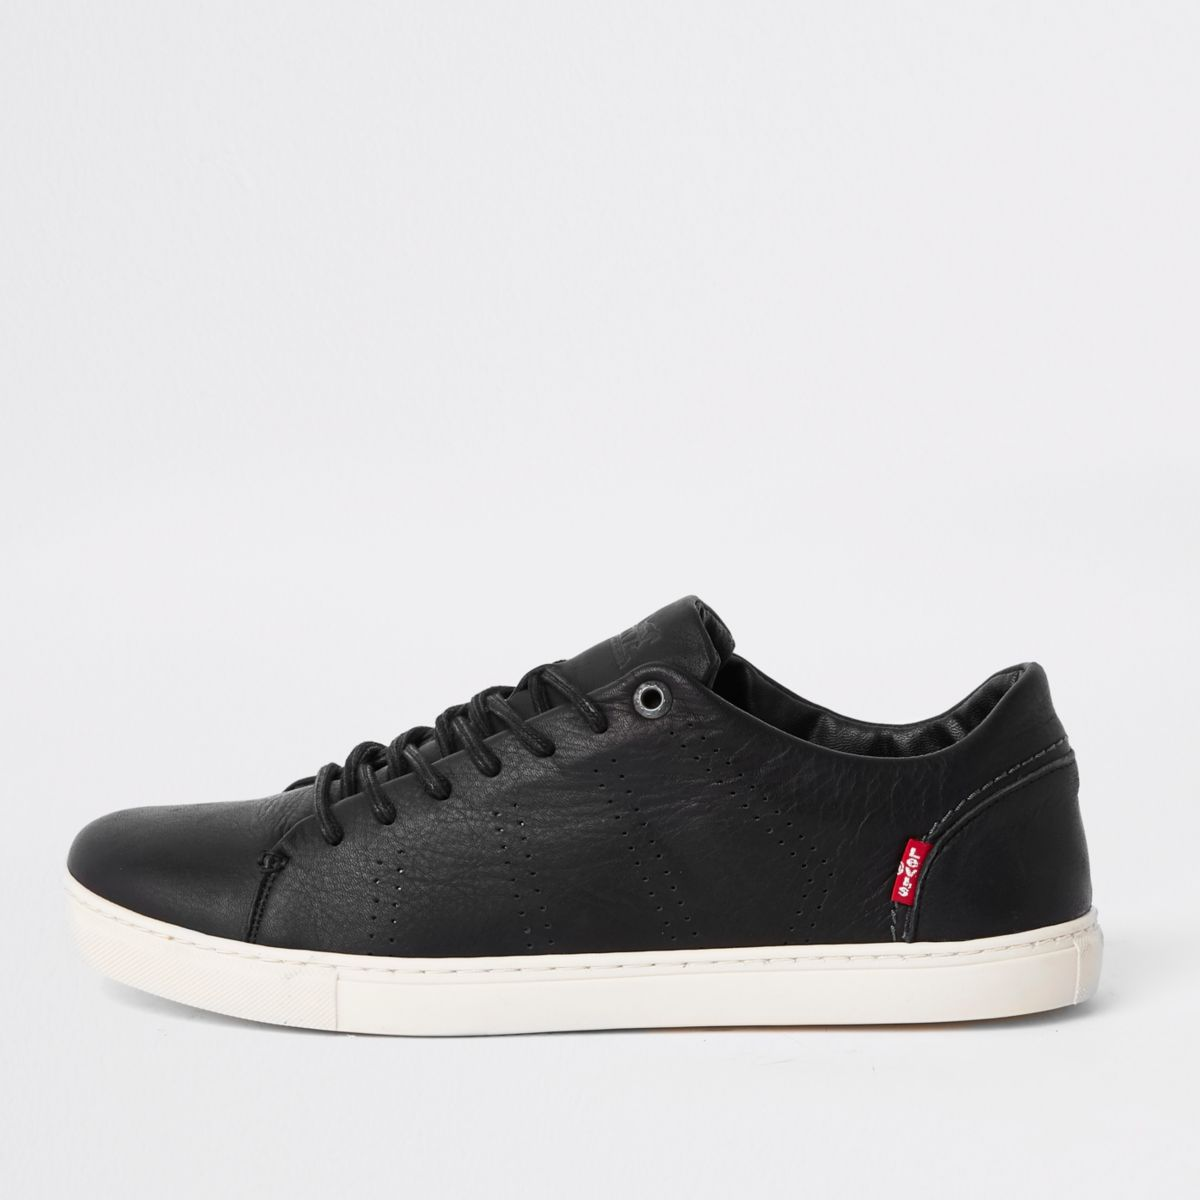 Levi's black leather lace-up sneakers